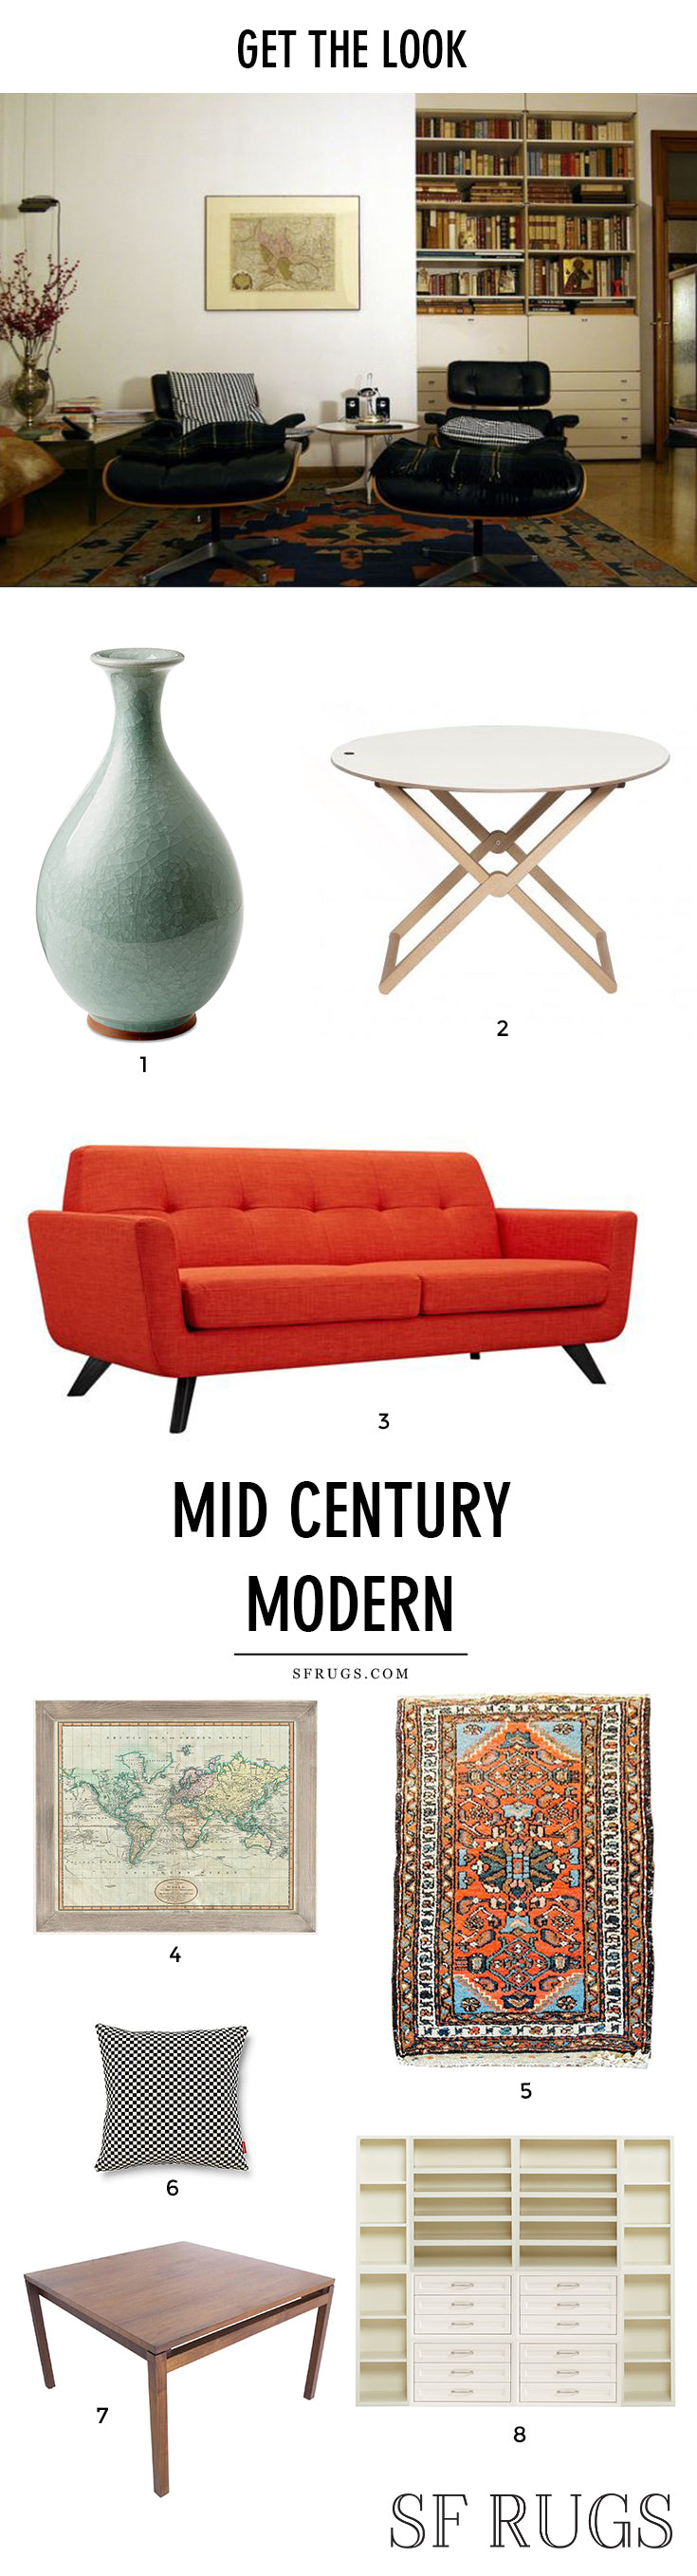 Need mid century modern living room inspiration? Get the look of this mid century modern living room with a few key pieces including a mid century eclectic vintage rug. Mid century modern decor, mid century modern house, mid century modern living room, mid century modern DIY, mid century modern furniture,  mid century modern design, mid century modern chair, mid century modern interiors, mid century modern rug @sfrugs sfrugs.com